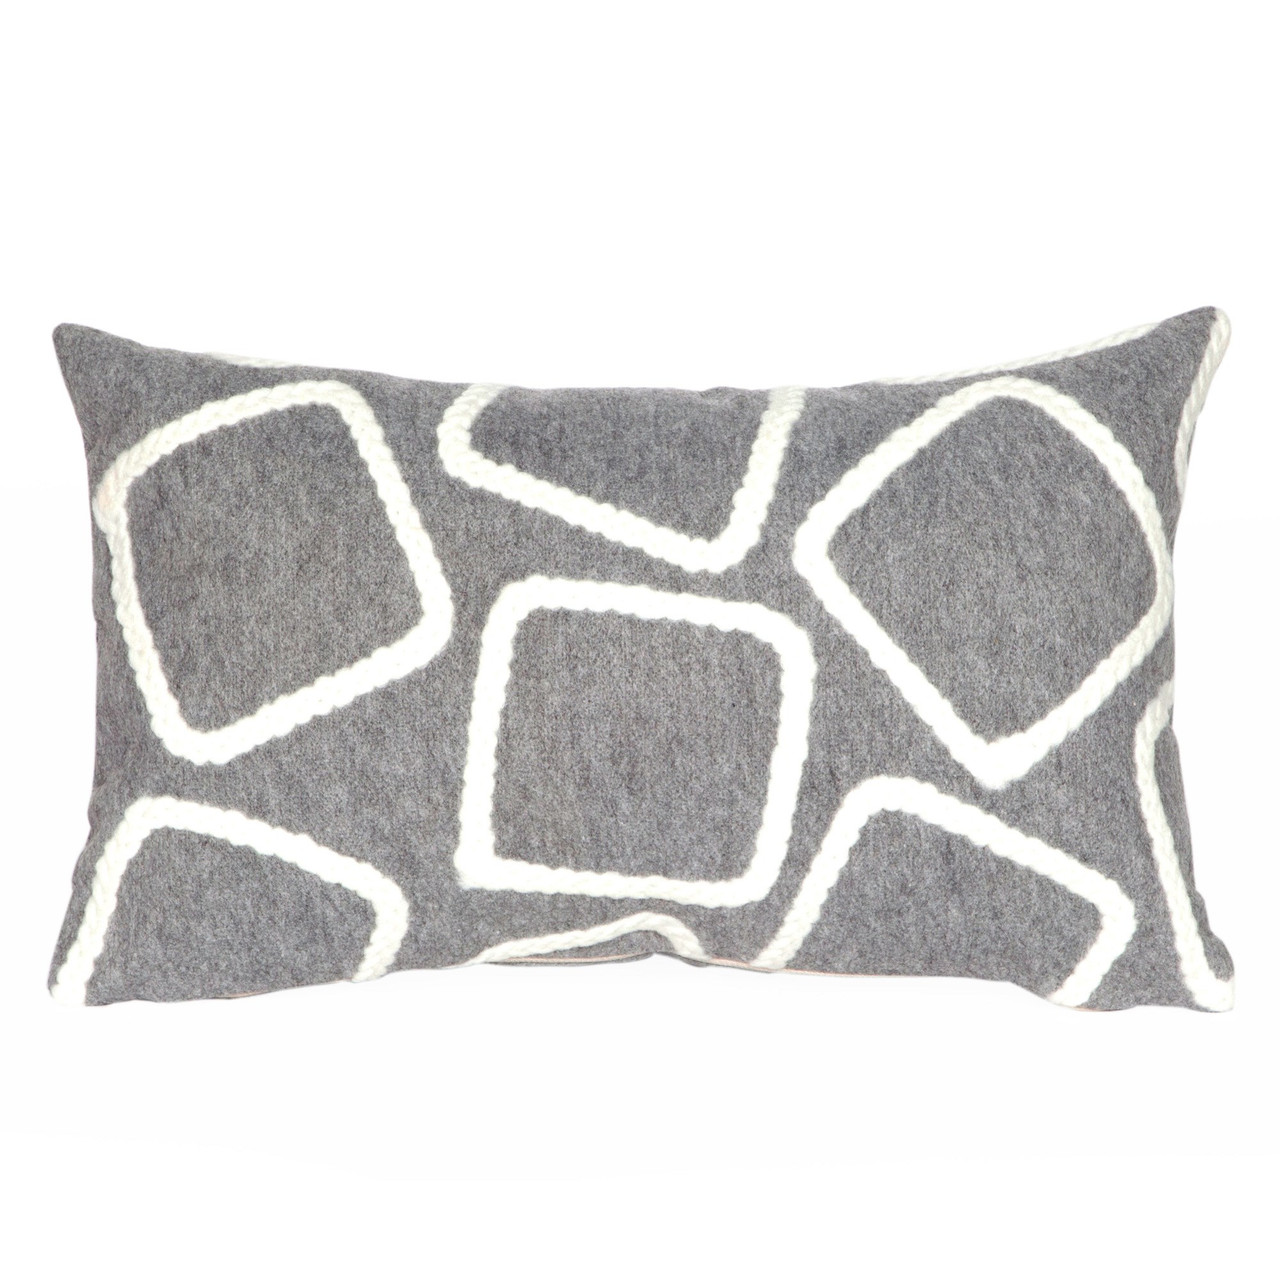 Visions Silver Squares Indoor/Outdoor Throw Pillows - 2 Sizes Avail